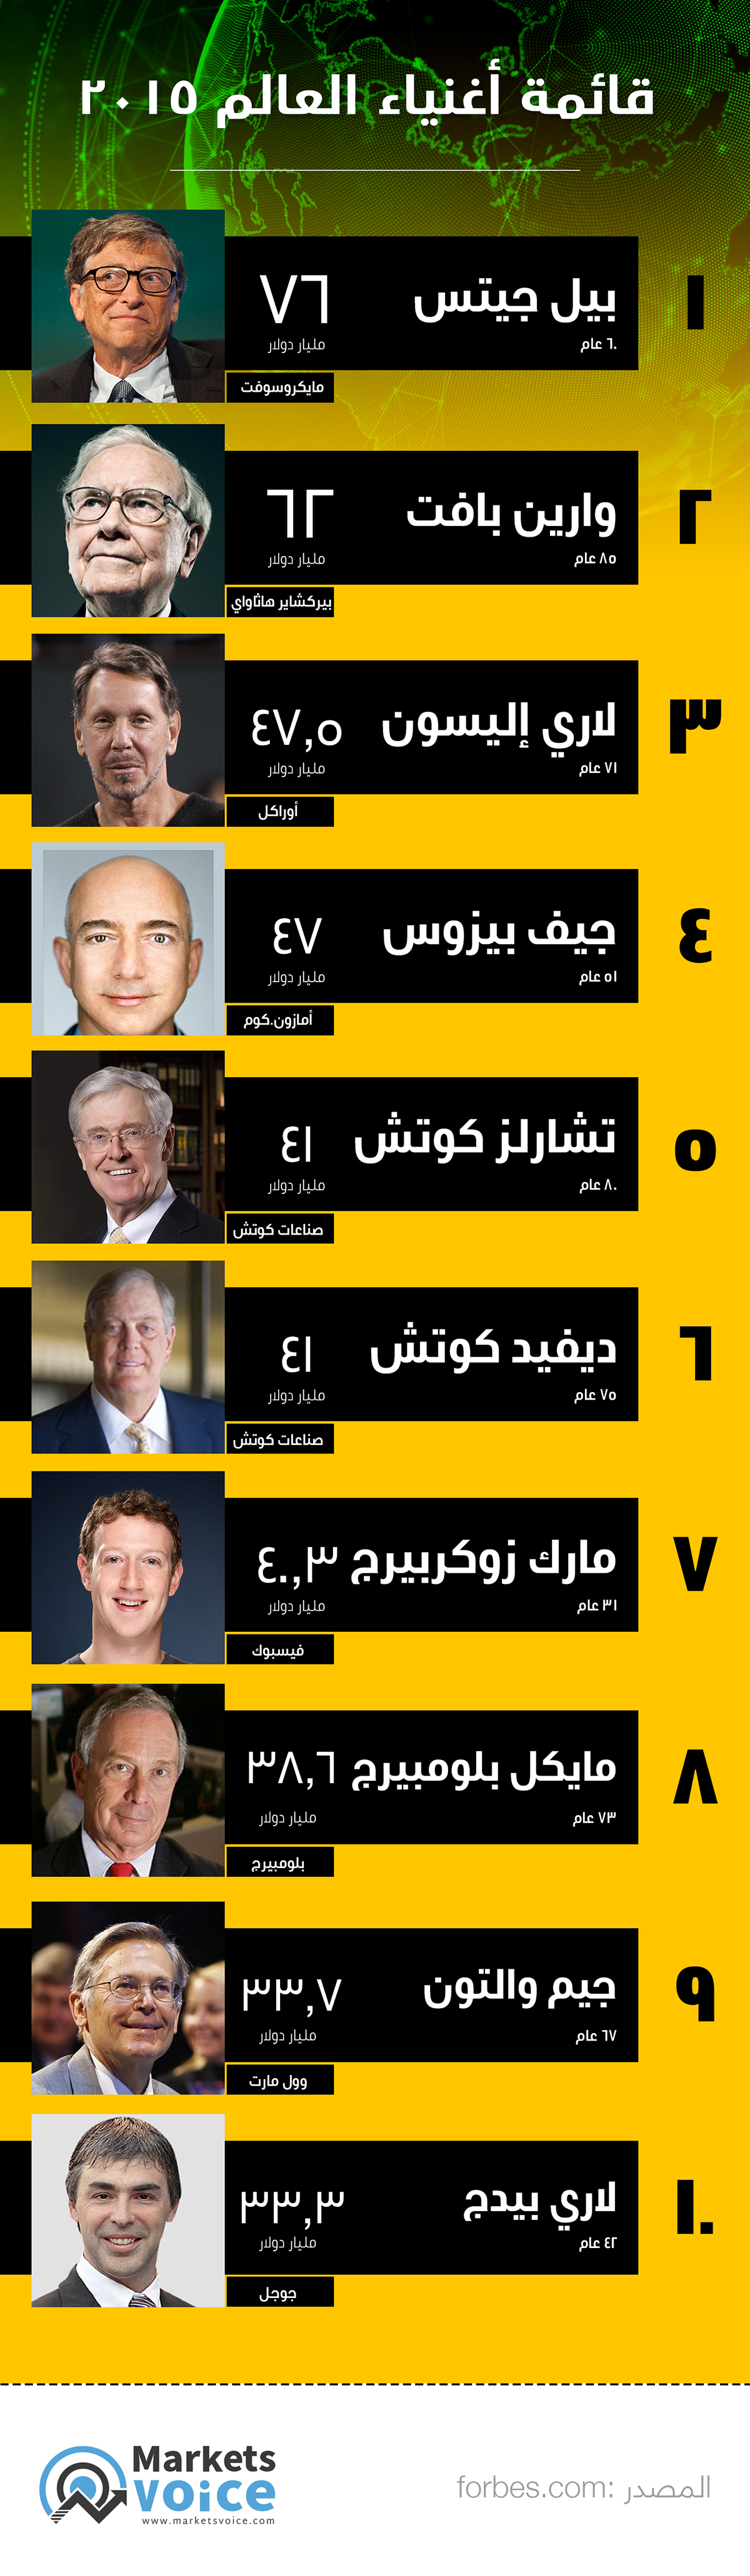 Top 10 richest people in the world - infographic Saeed elgarf saeed el garf